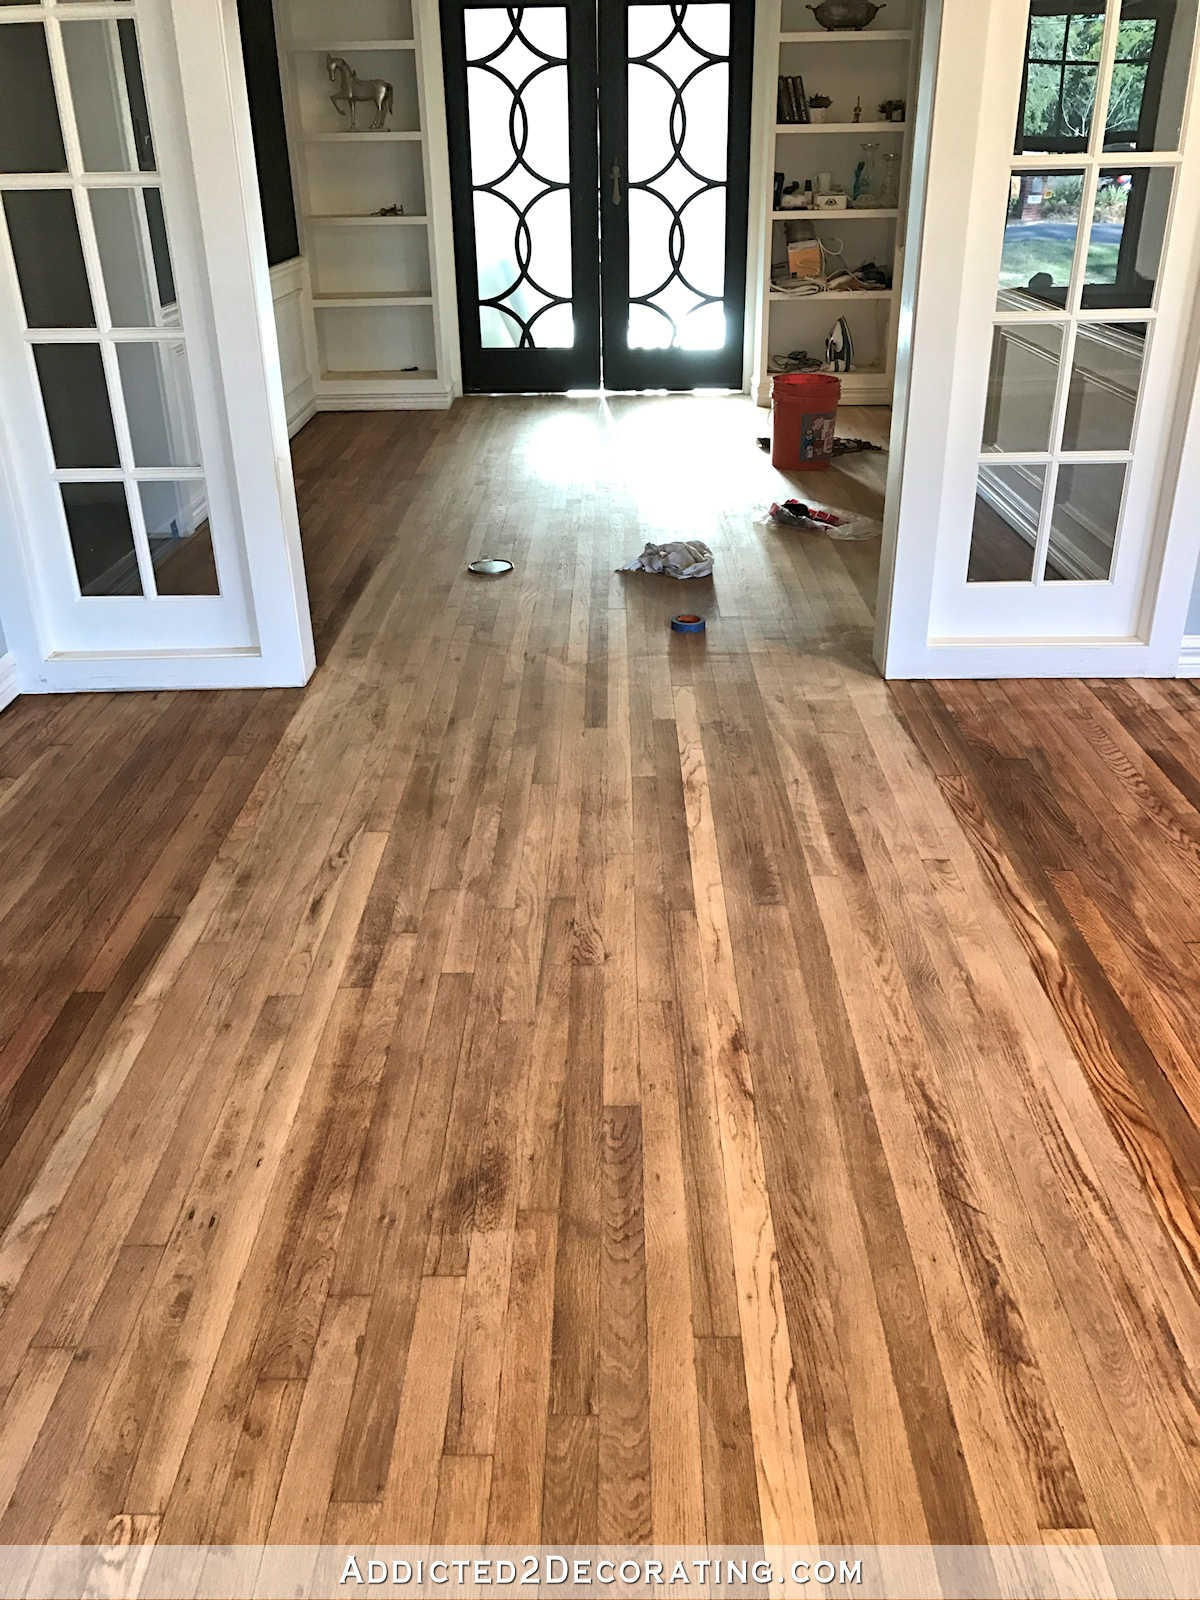 red oak hardwood flooring cost of 19 unique how much does it cost to refinish hardwood floors gallery intended for how much does it cost to refinish hardwood floors unique adventures in staining my red oak